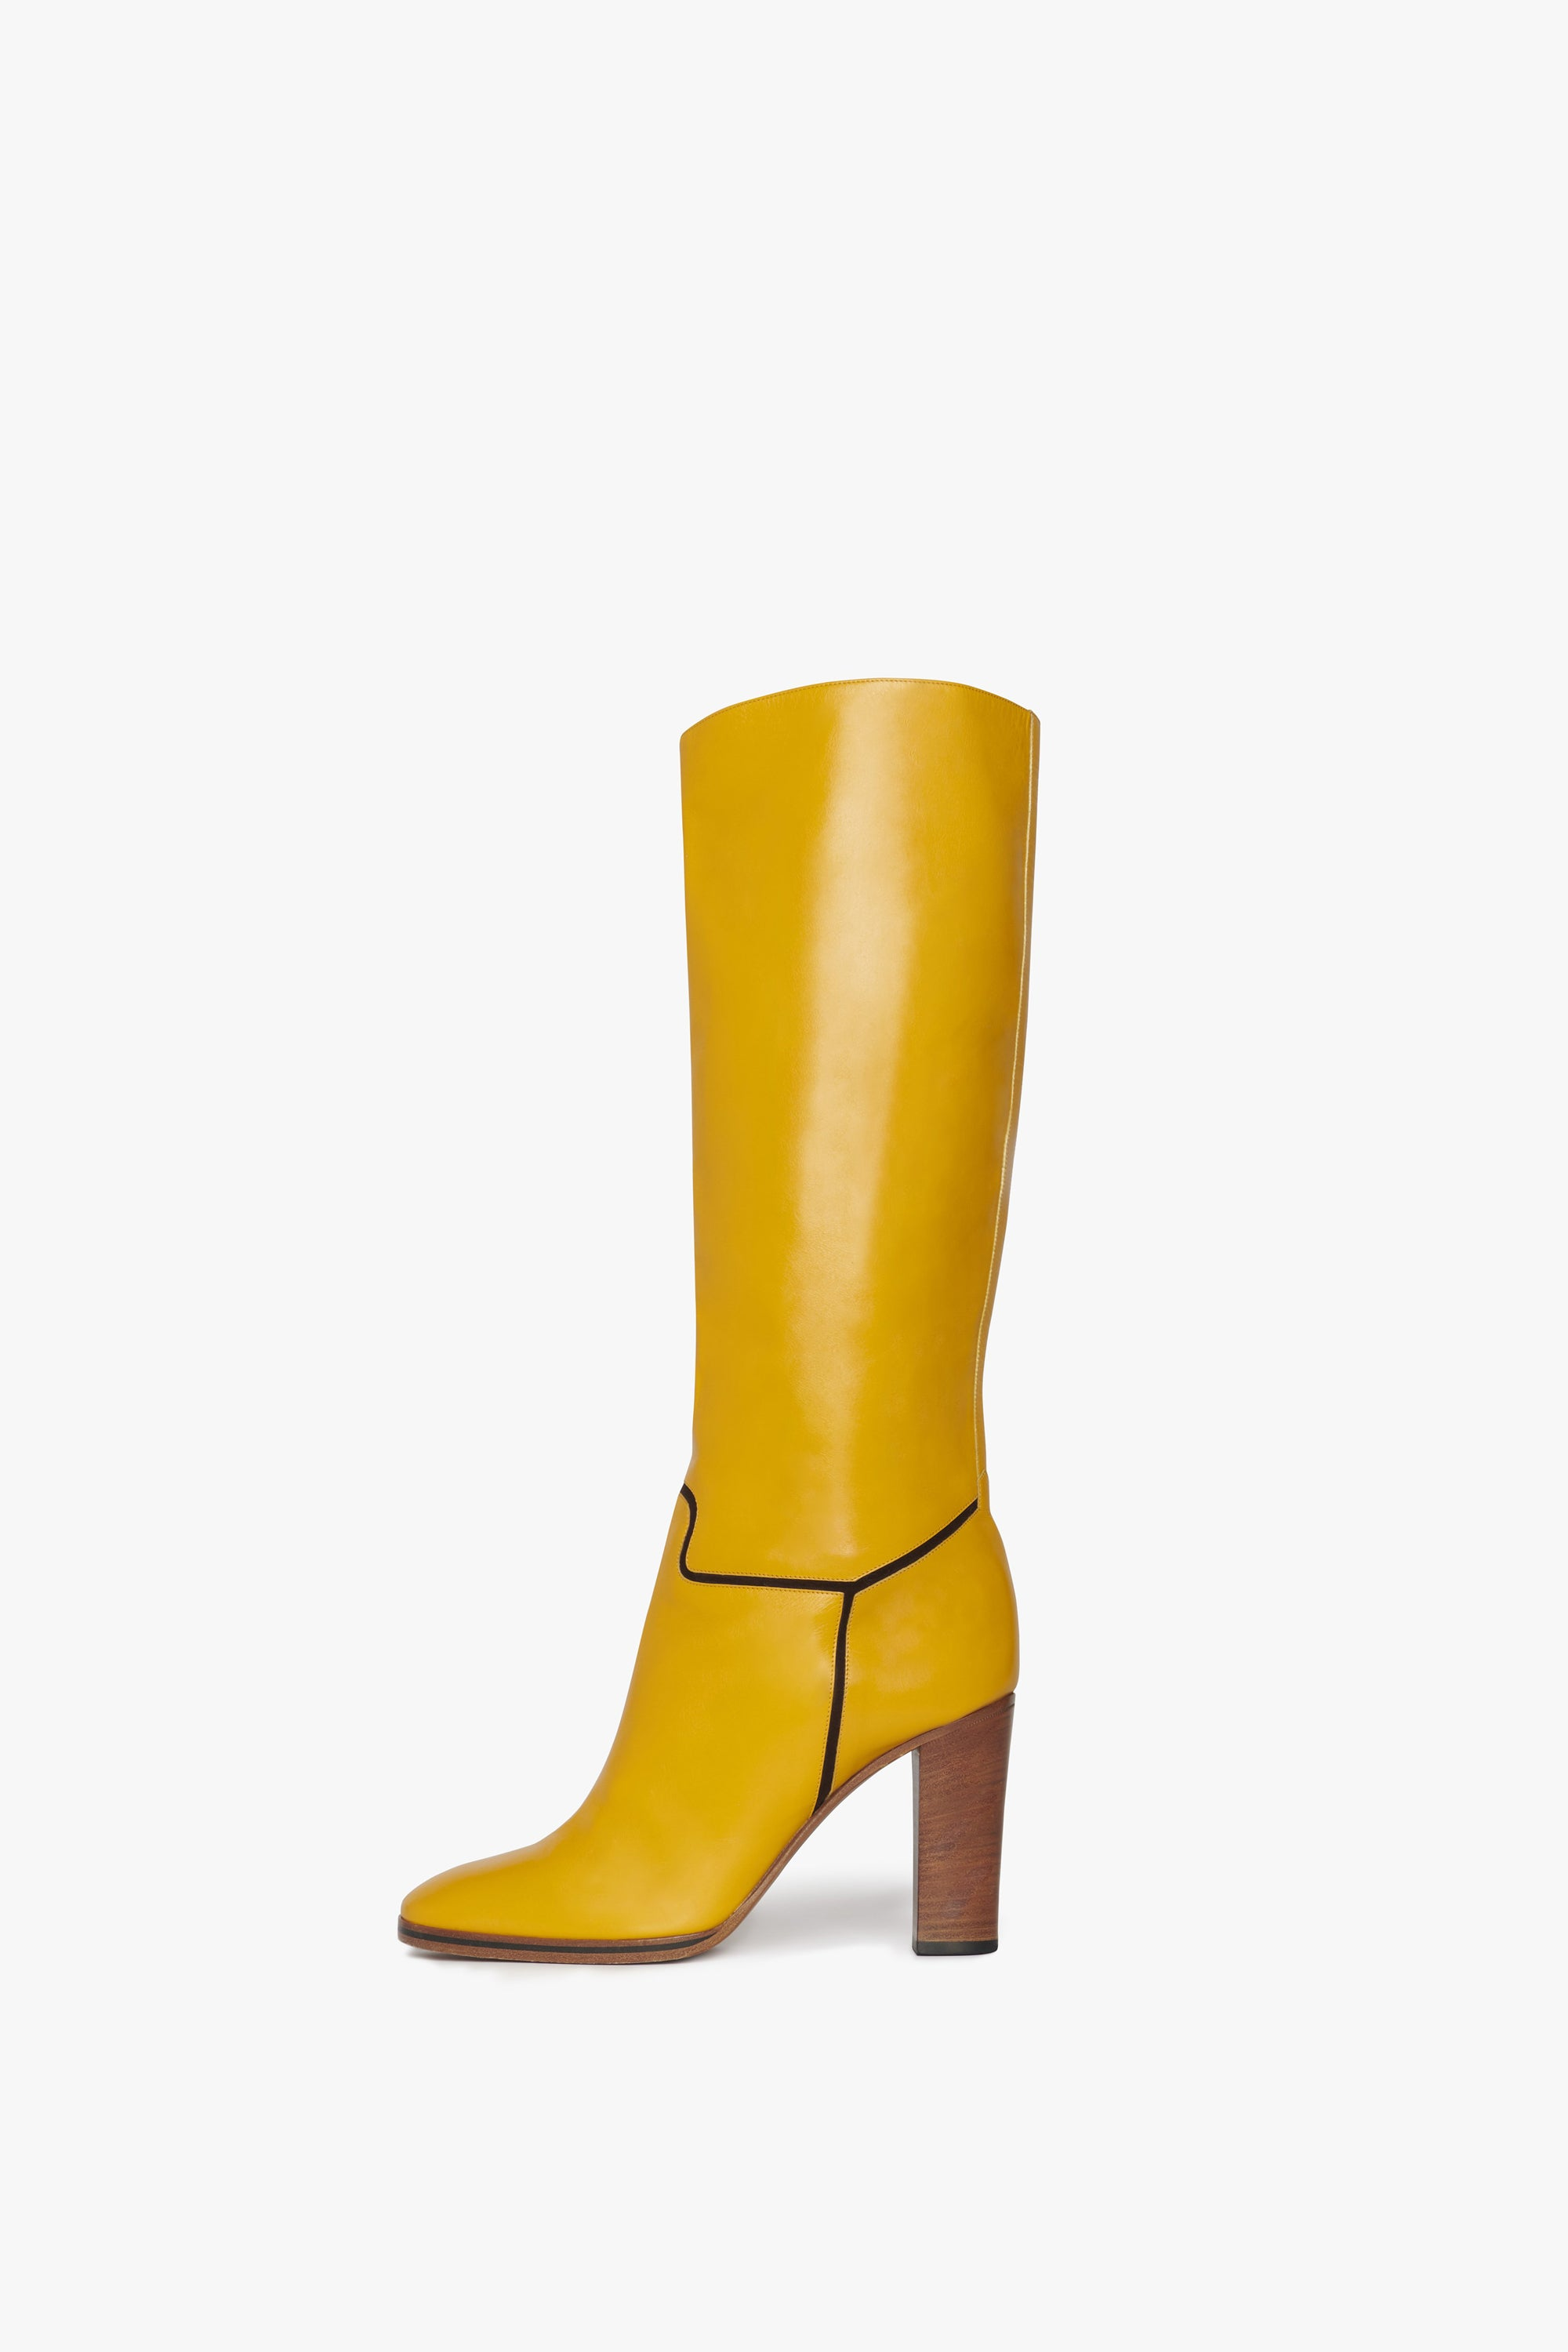 Valentina Knee-high Leather 95mm Boot in Ochre Yellow